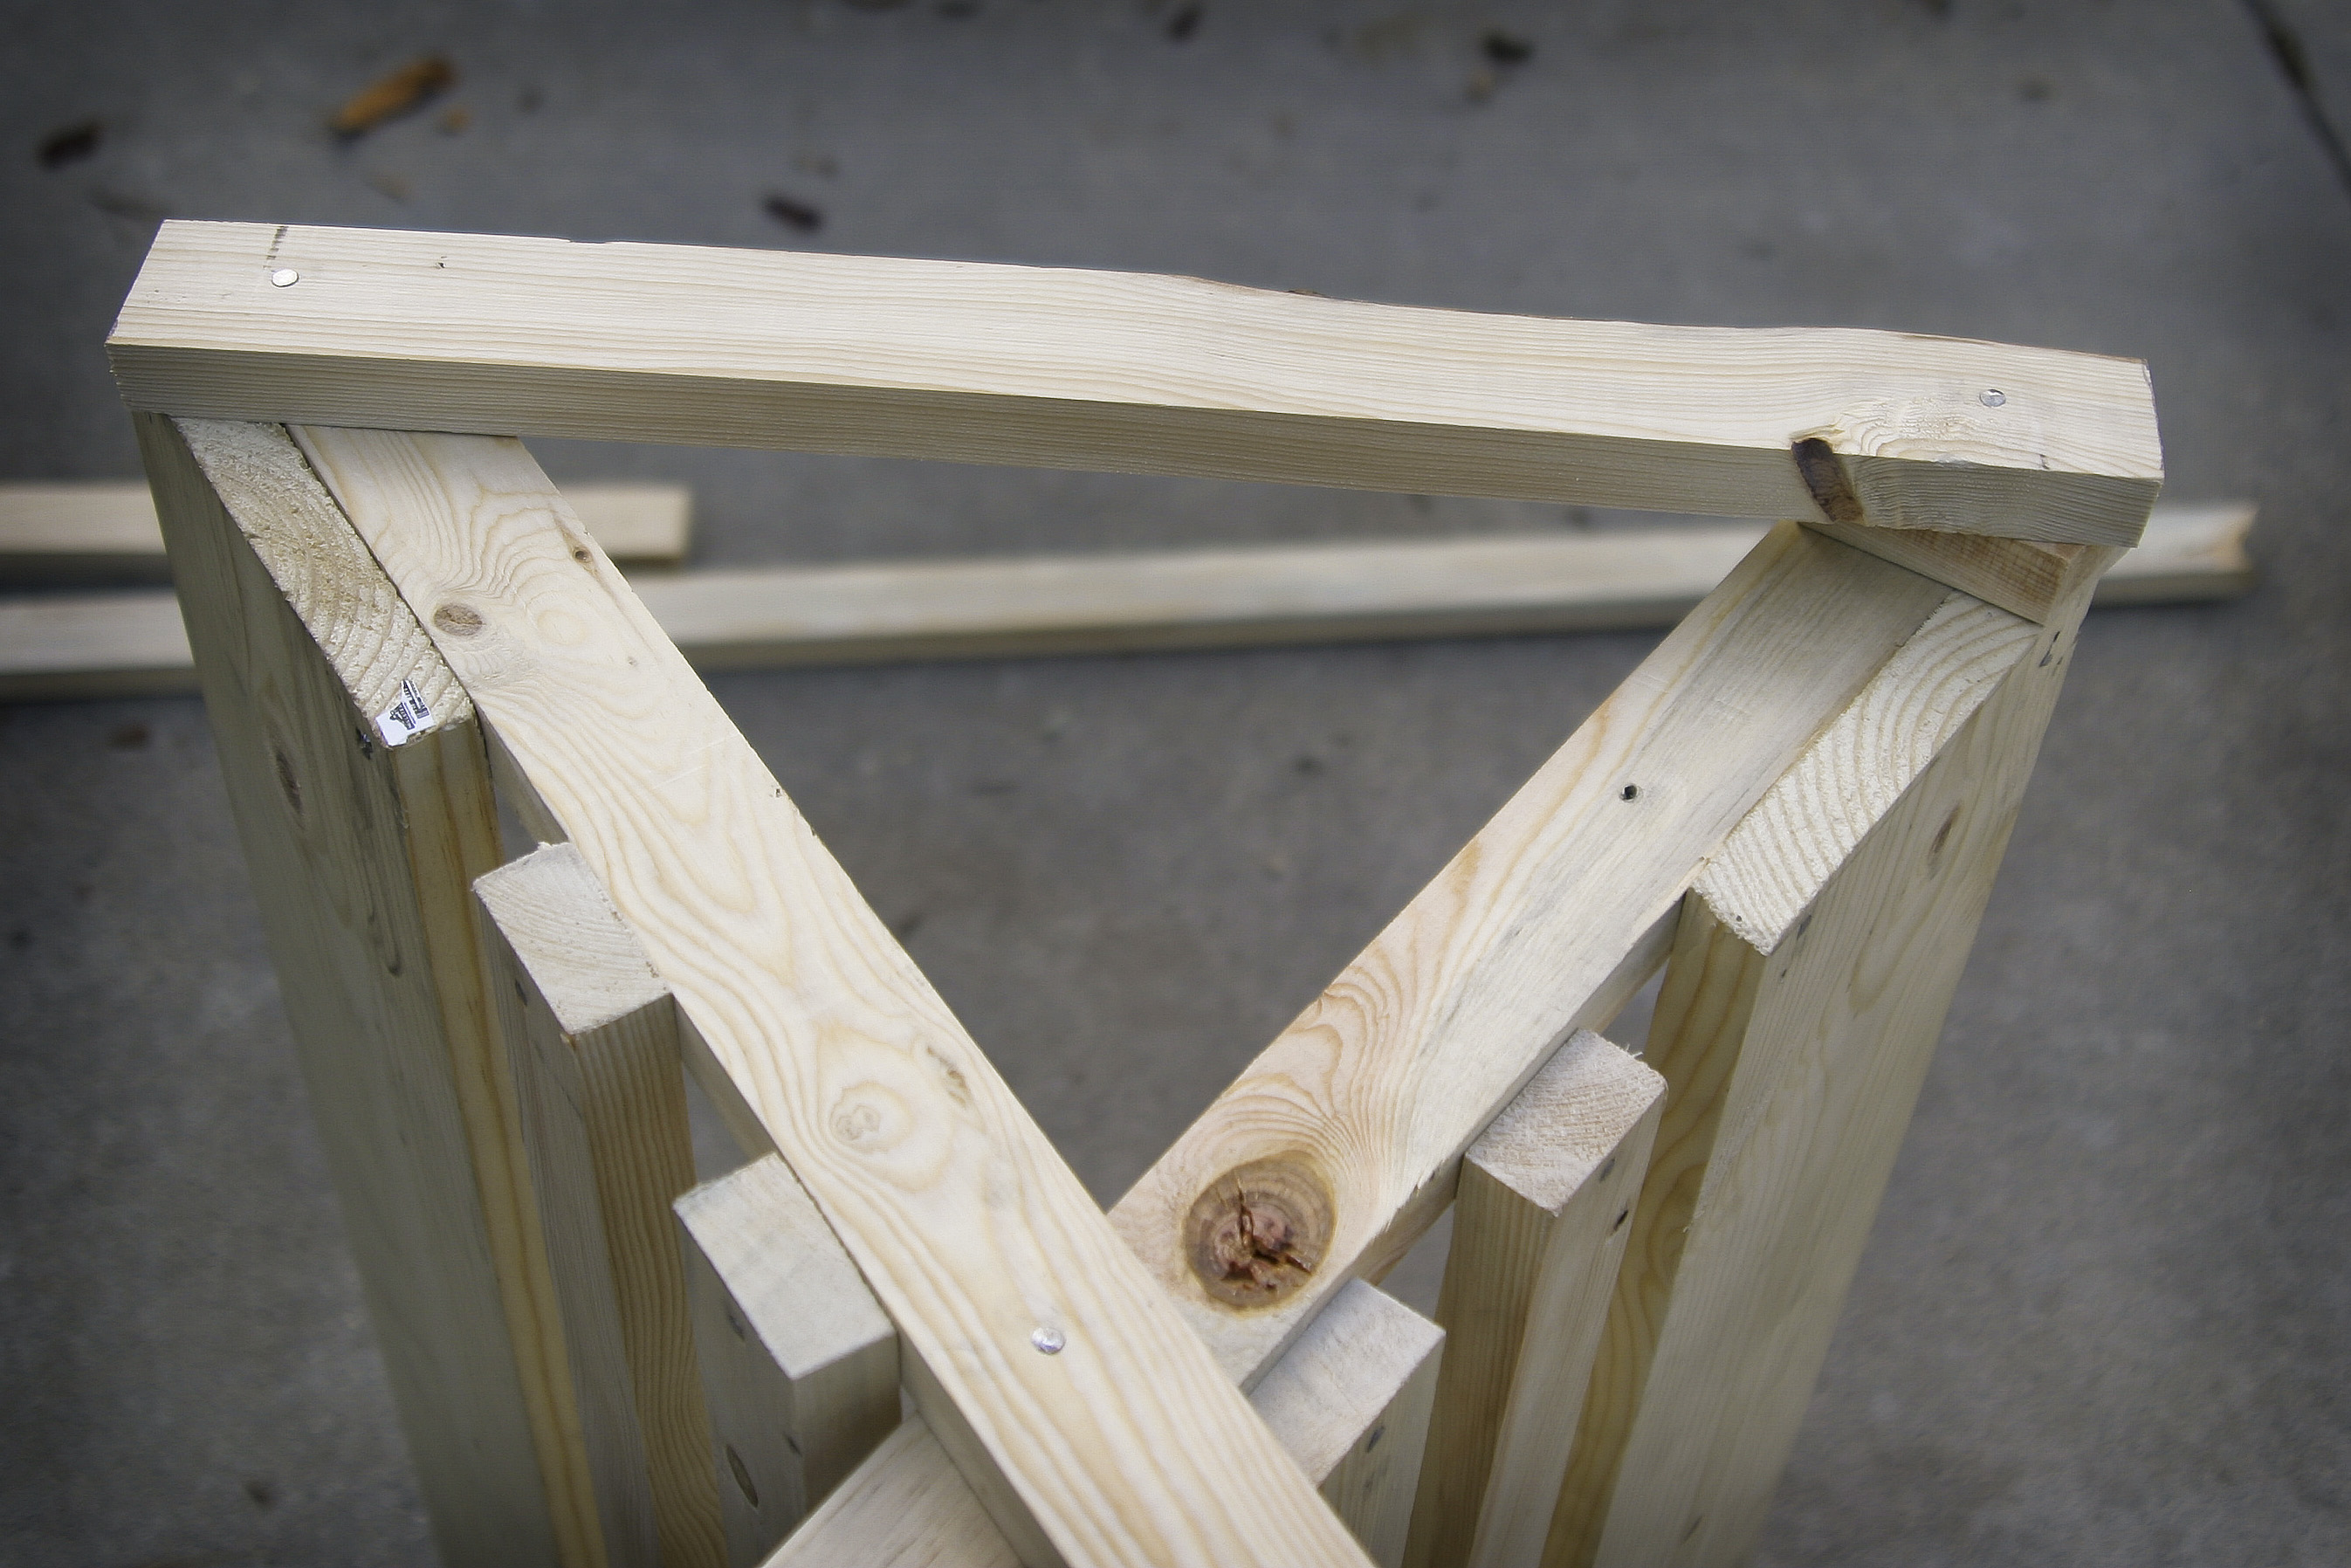 how to cut an even triangle out of wood